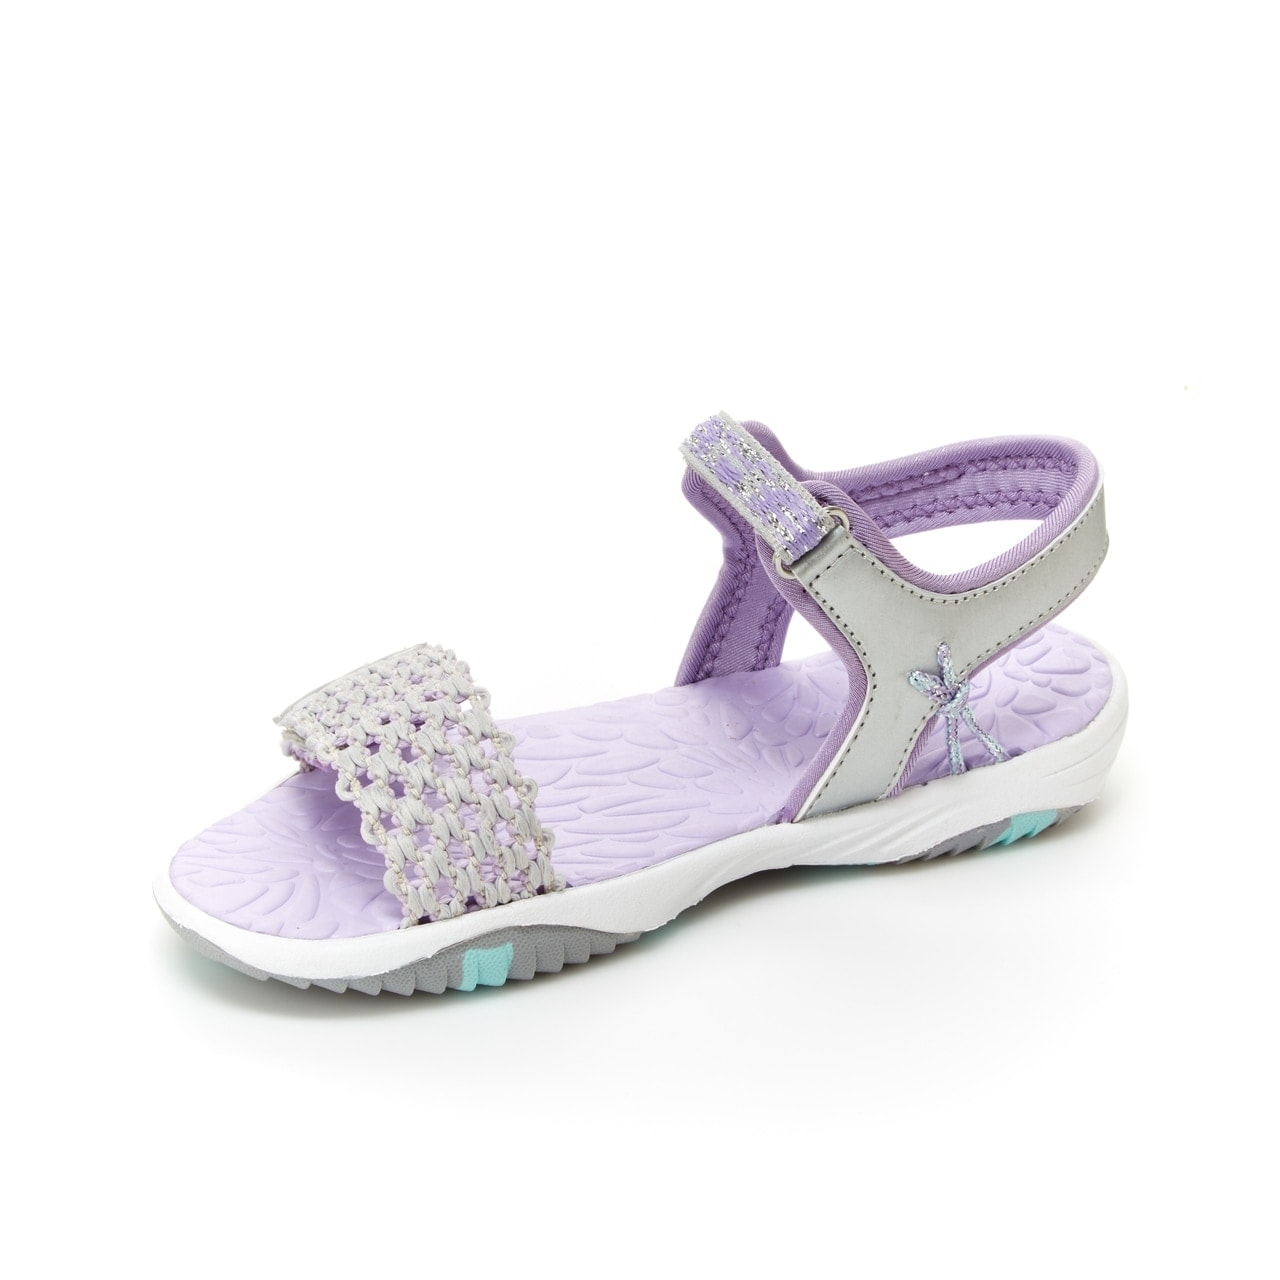 e0be8d3e913d Shop Kids JambuKD Girls mohi Ankle Strap Espadrille Sandals - Free Shipping  On Orders Over  45 - Overstock - 24266929